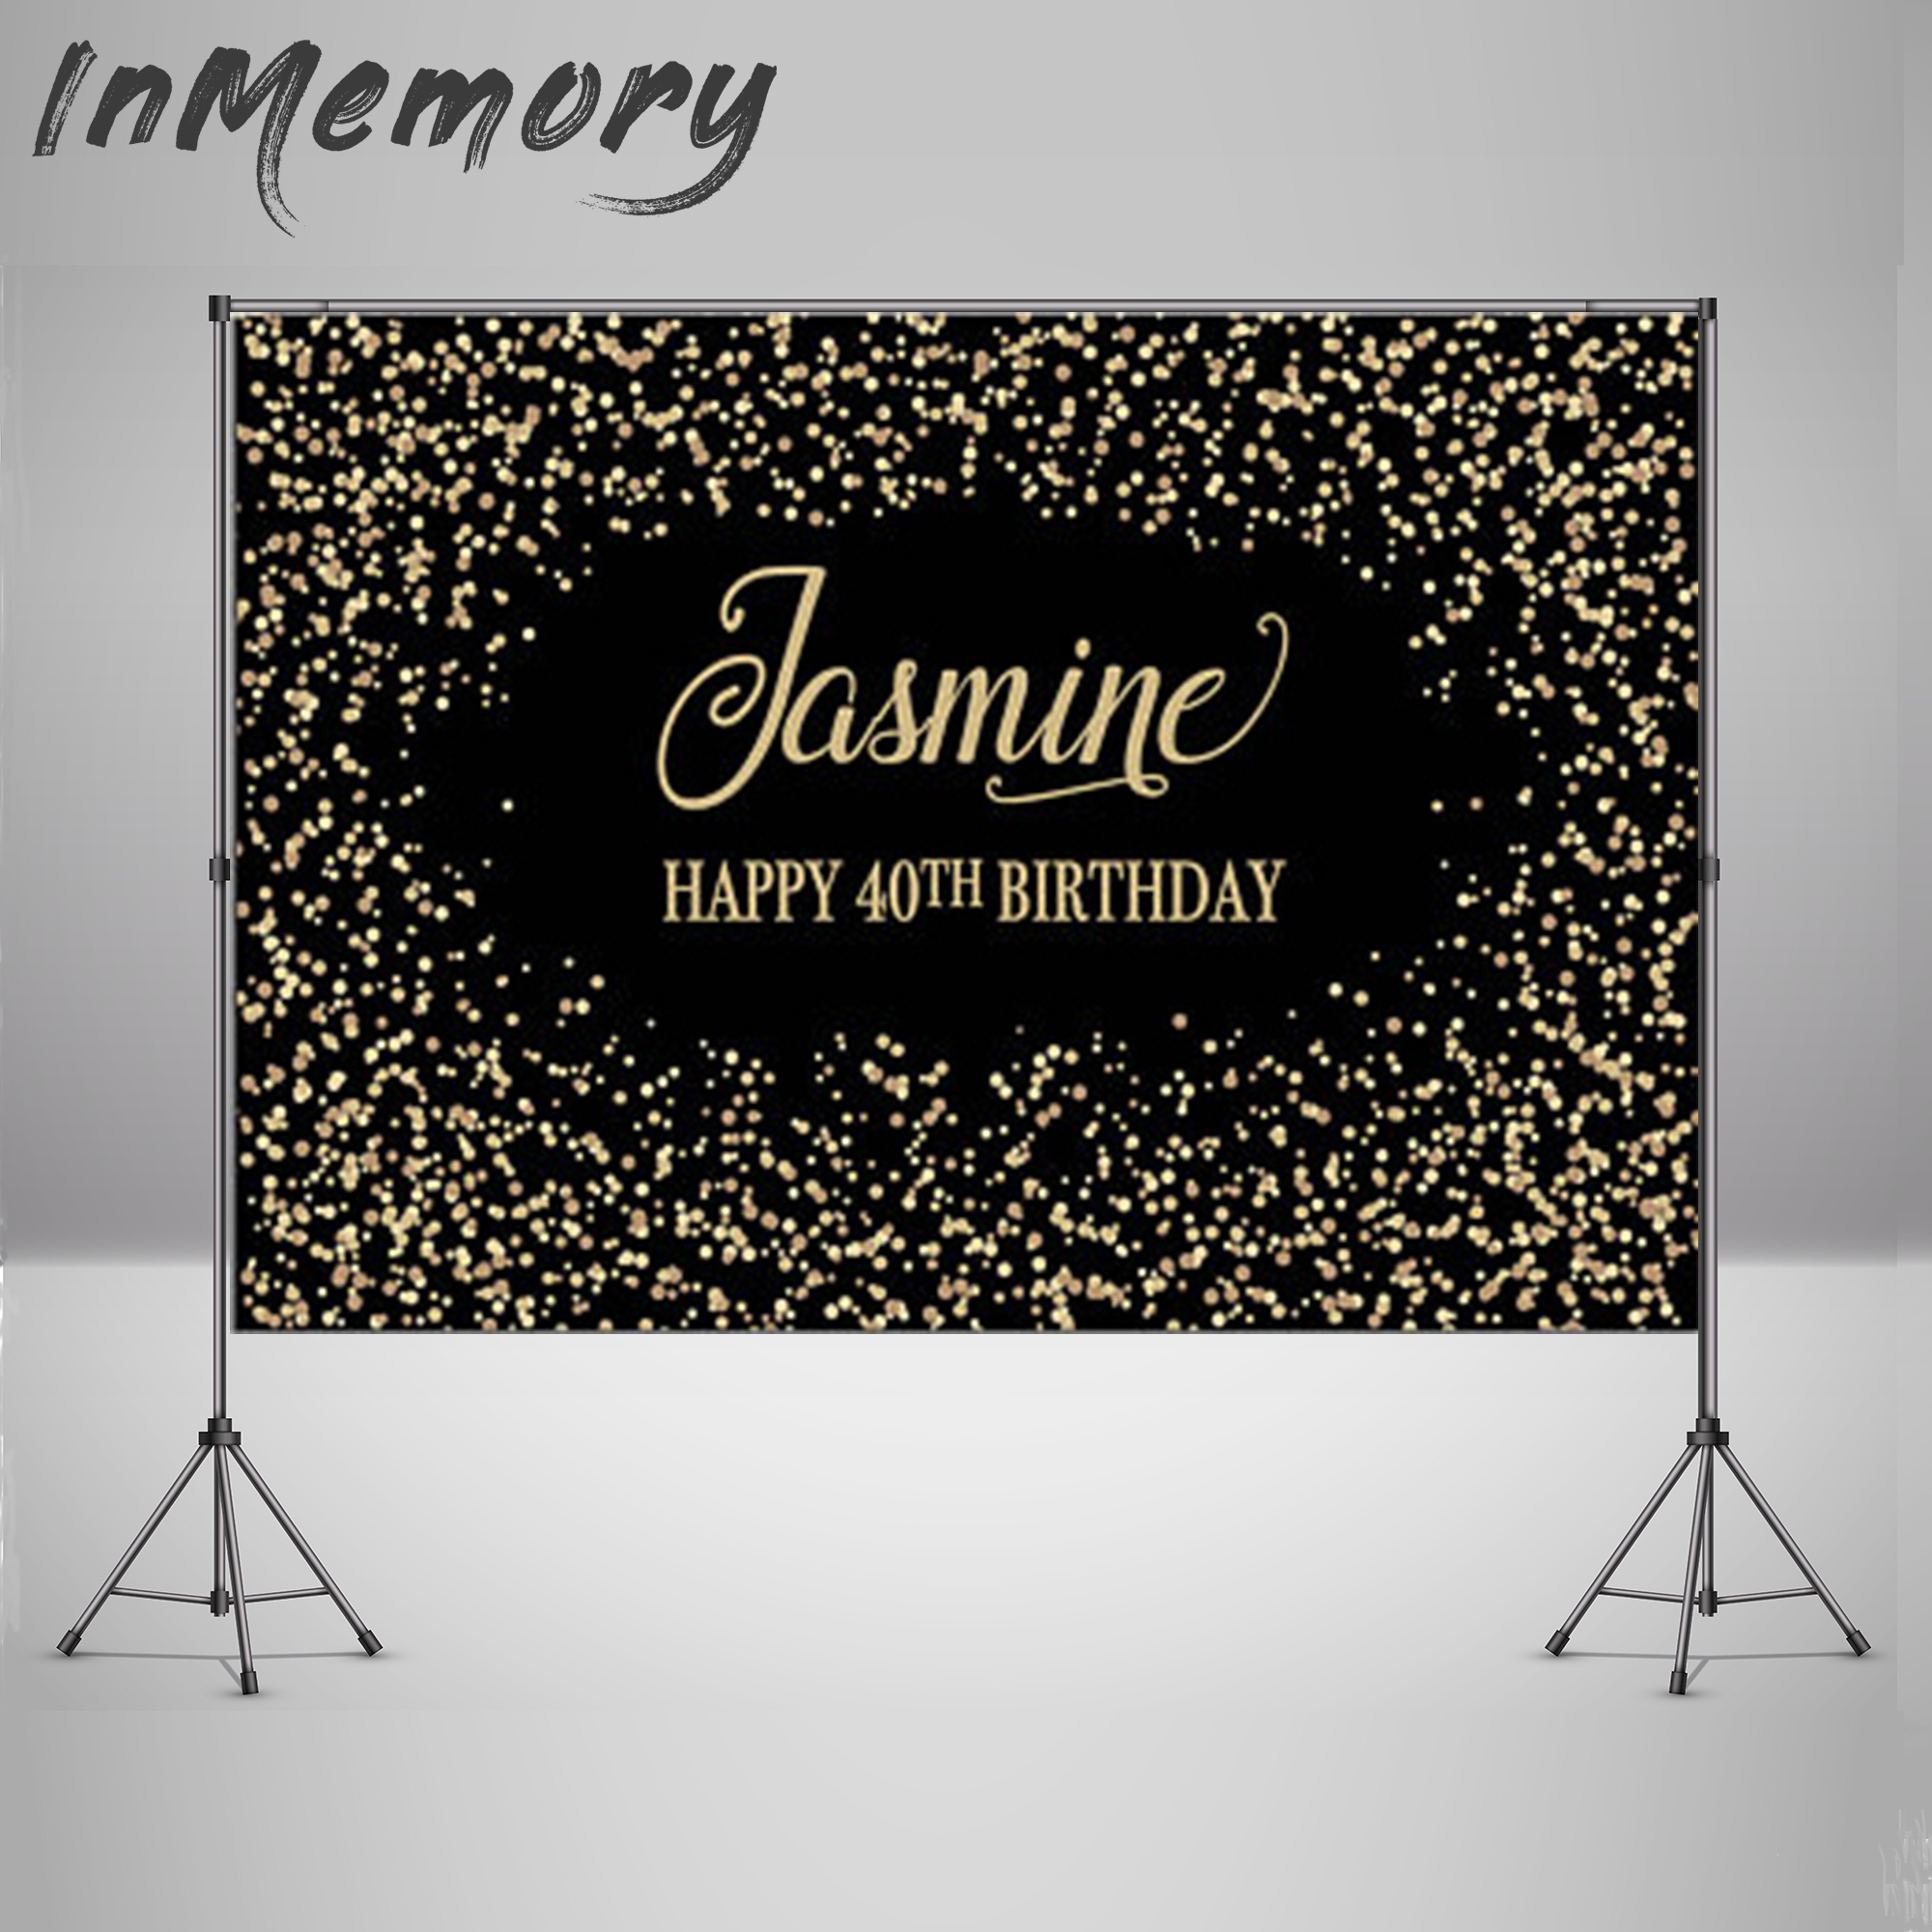 Vinyl Golden Glitters Photography Backgrounds Photo Studio Custom Black <font><b>40th</b></font> <font><b>Birthday</b></font> <font><b>Backdrops</b></font> Banners 220x150cm image